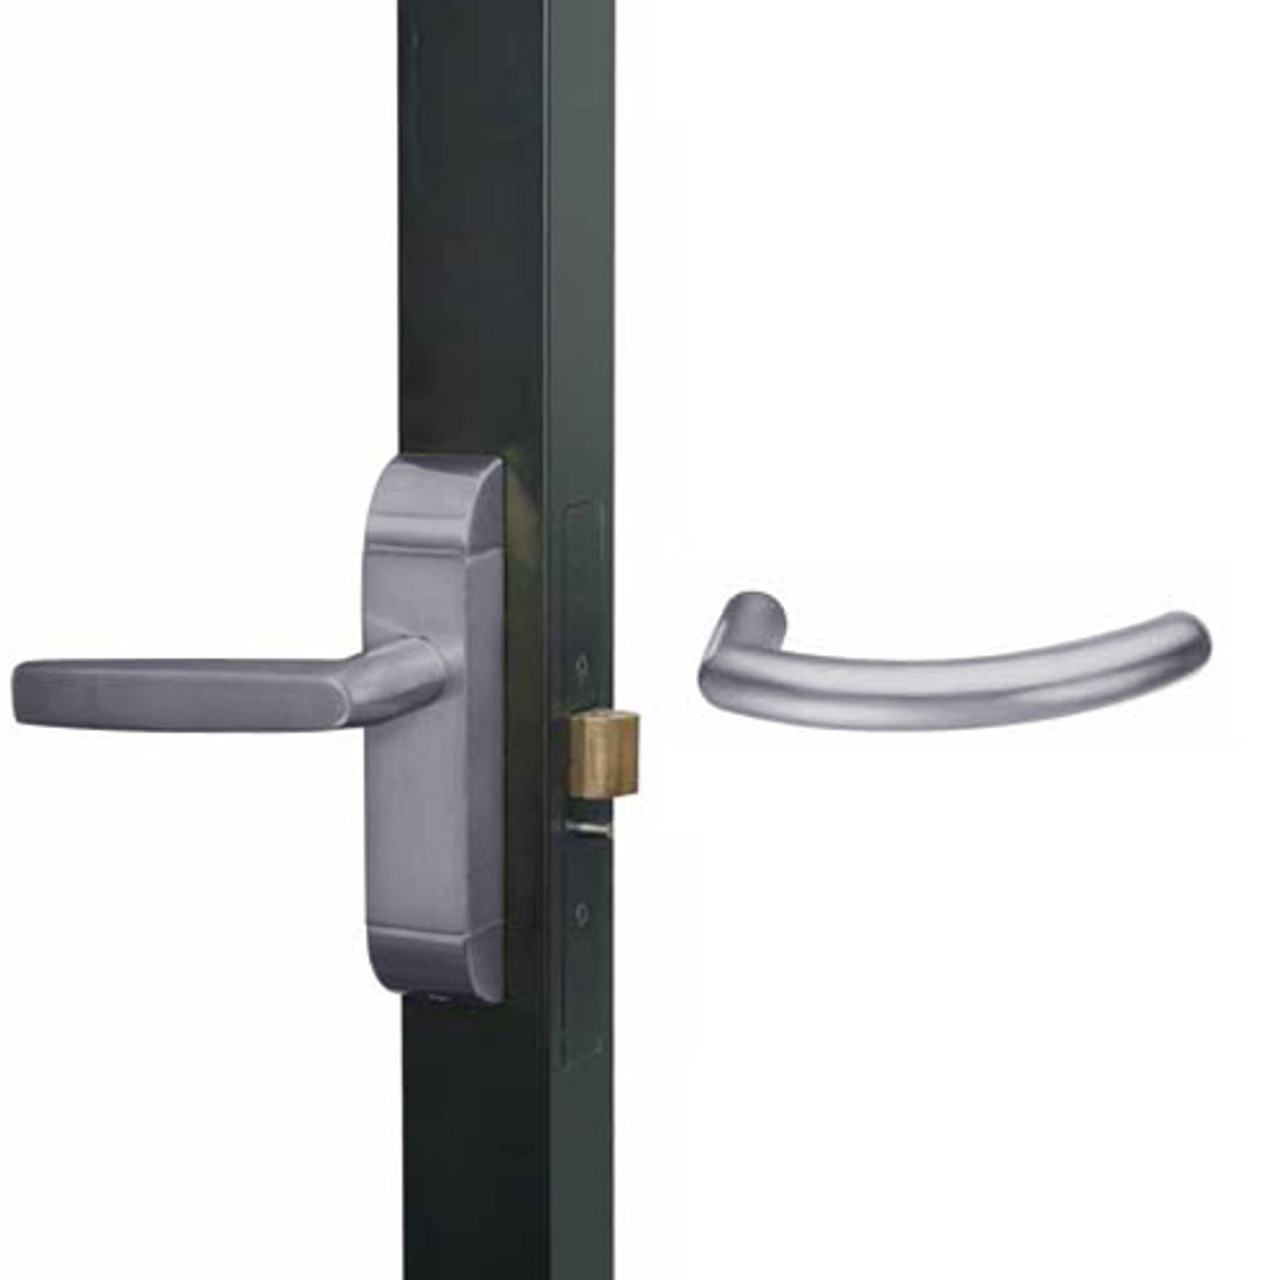 4600M-MG-551-US32D Adams Rite MG Designer Deadlatch handle in Satin Stainless Finish